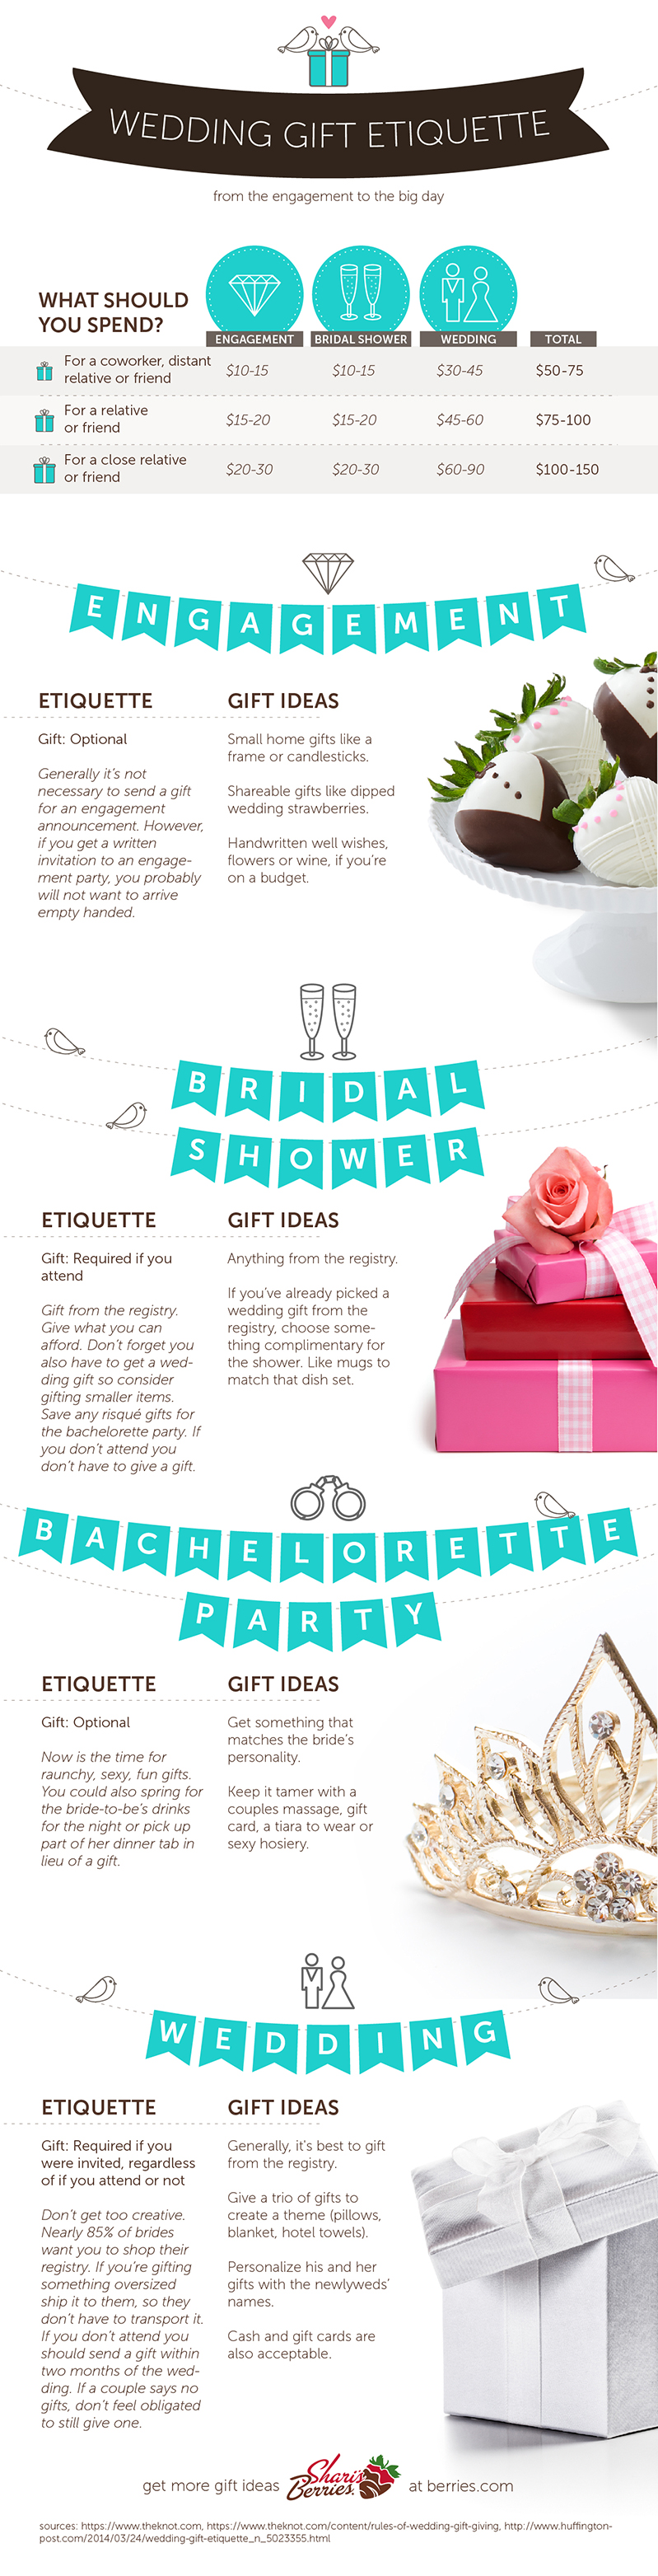 Wedding Gift Etiquette - Shari's Berries